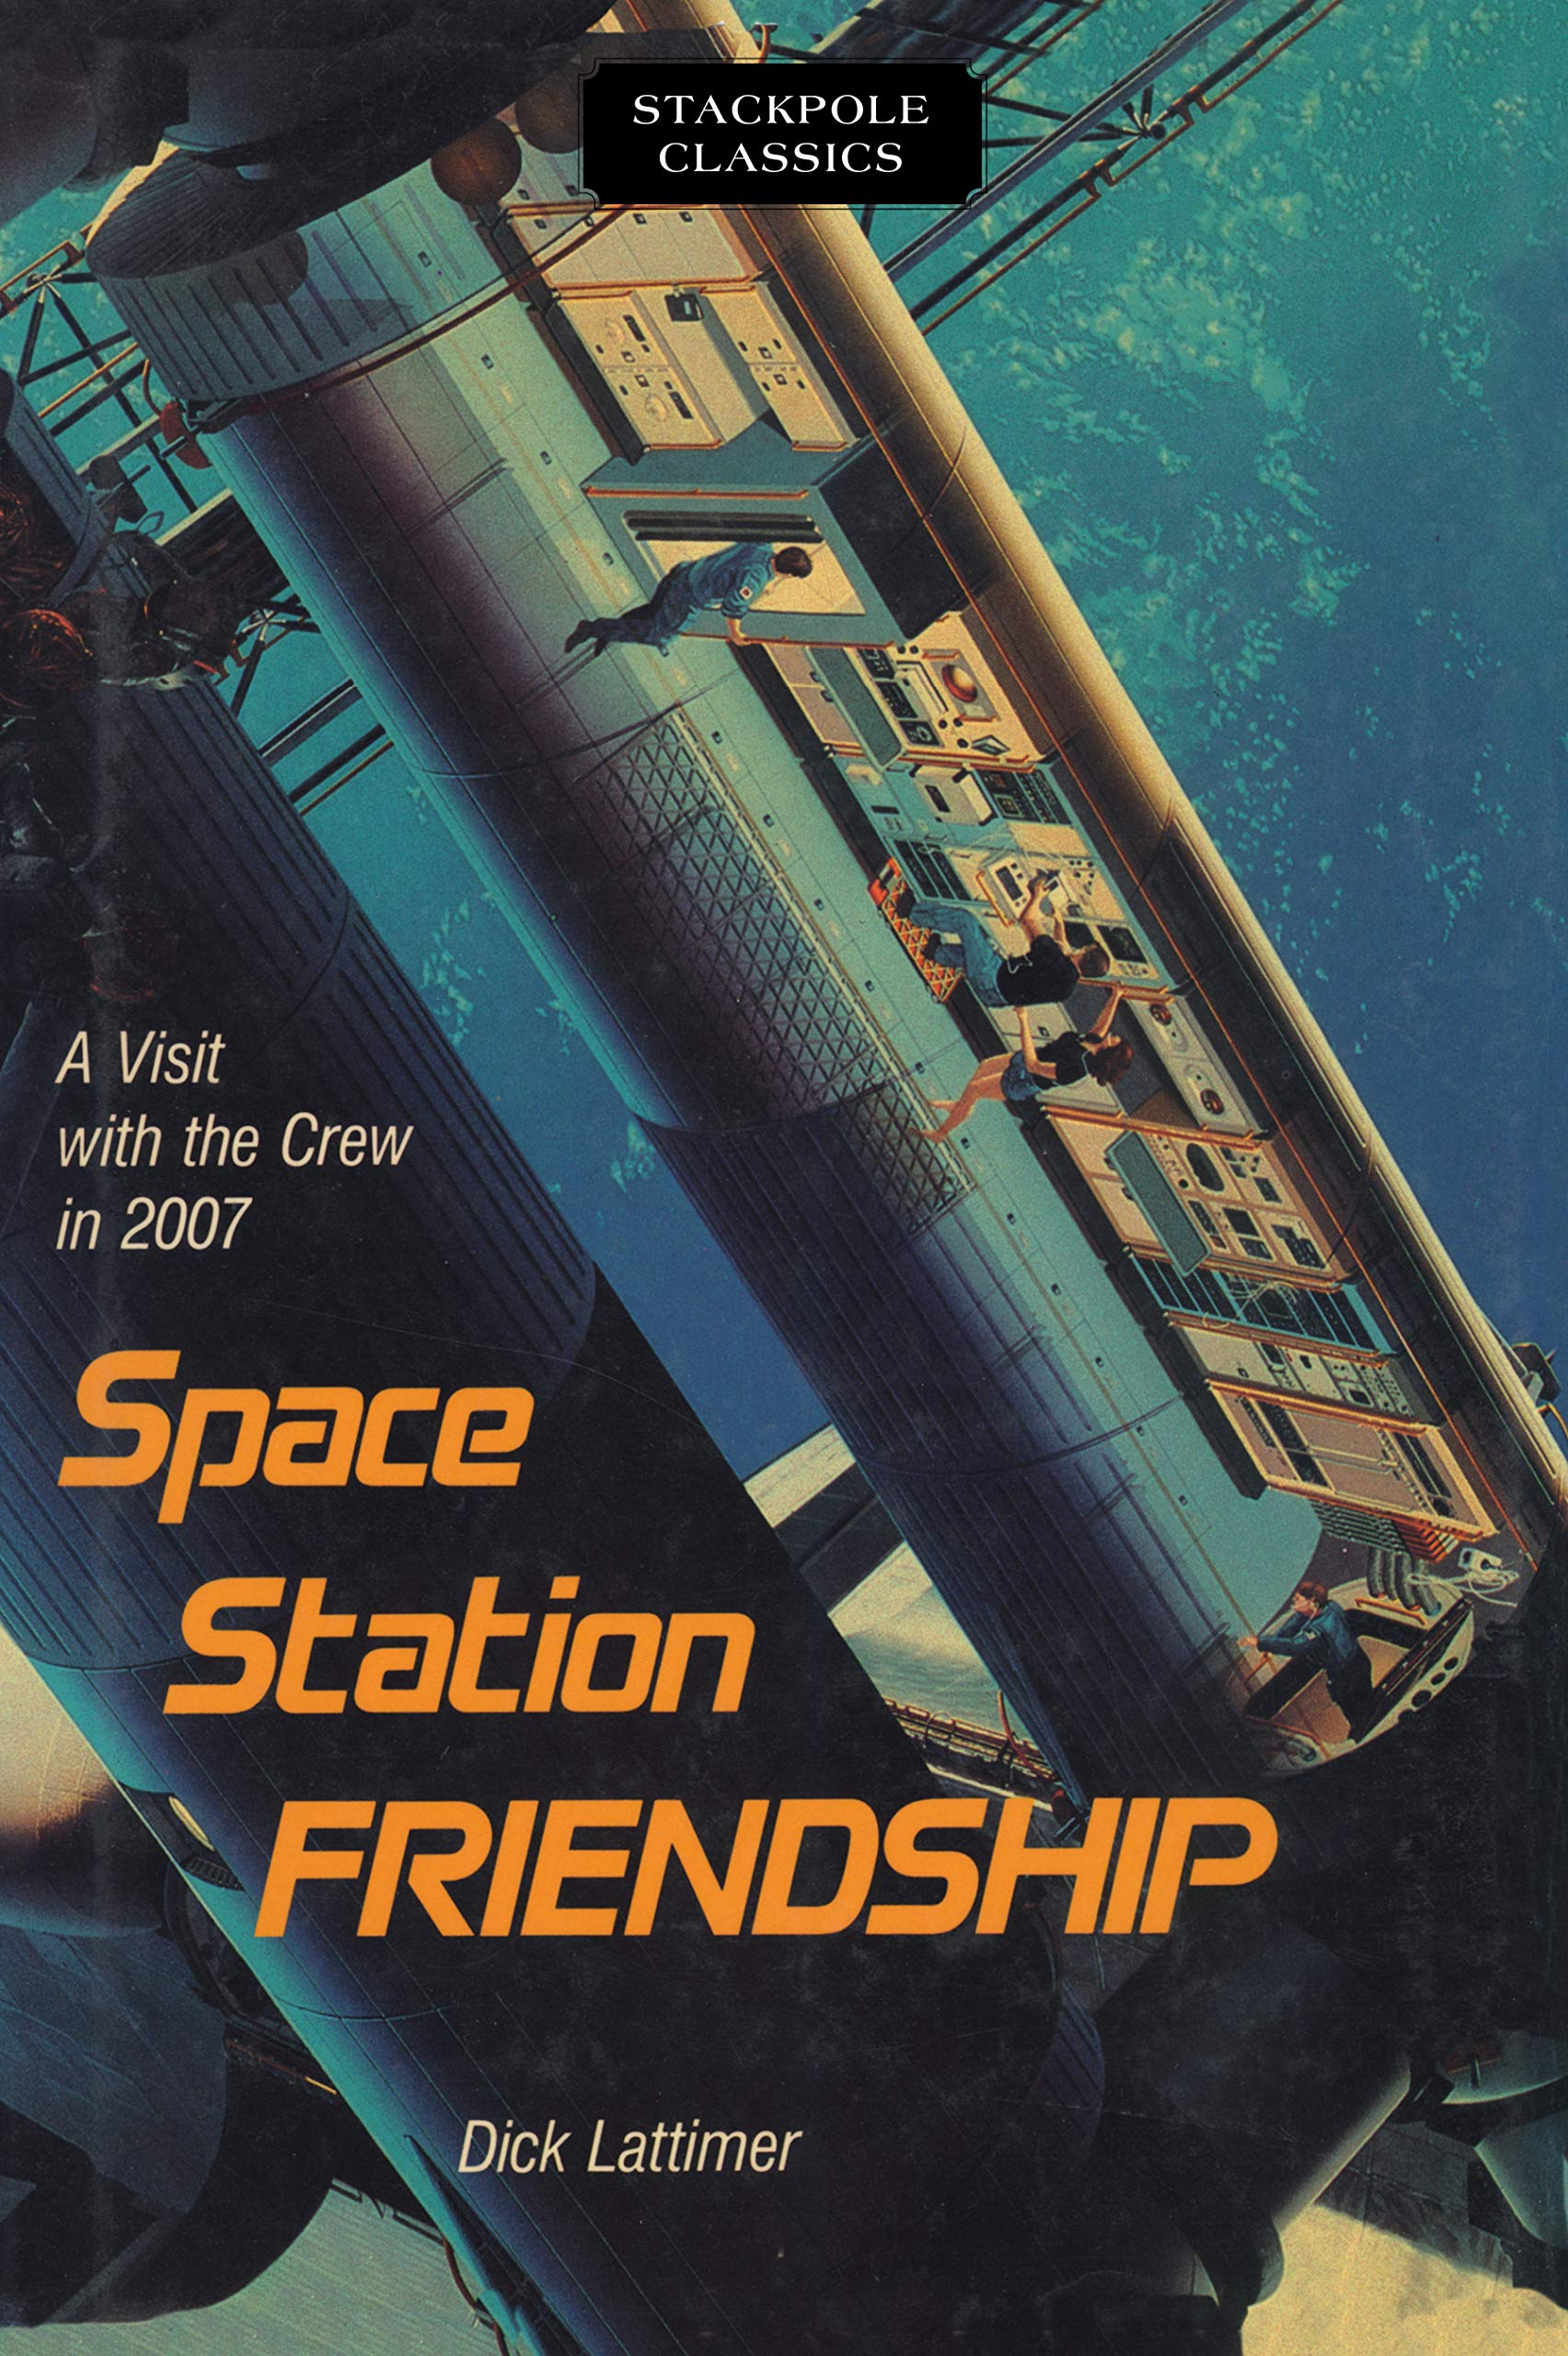 Space Station Friendship: A Visit with the Crew in 2007 (Stackpole Classics)